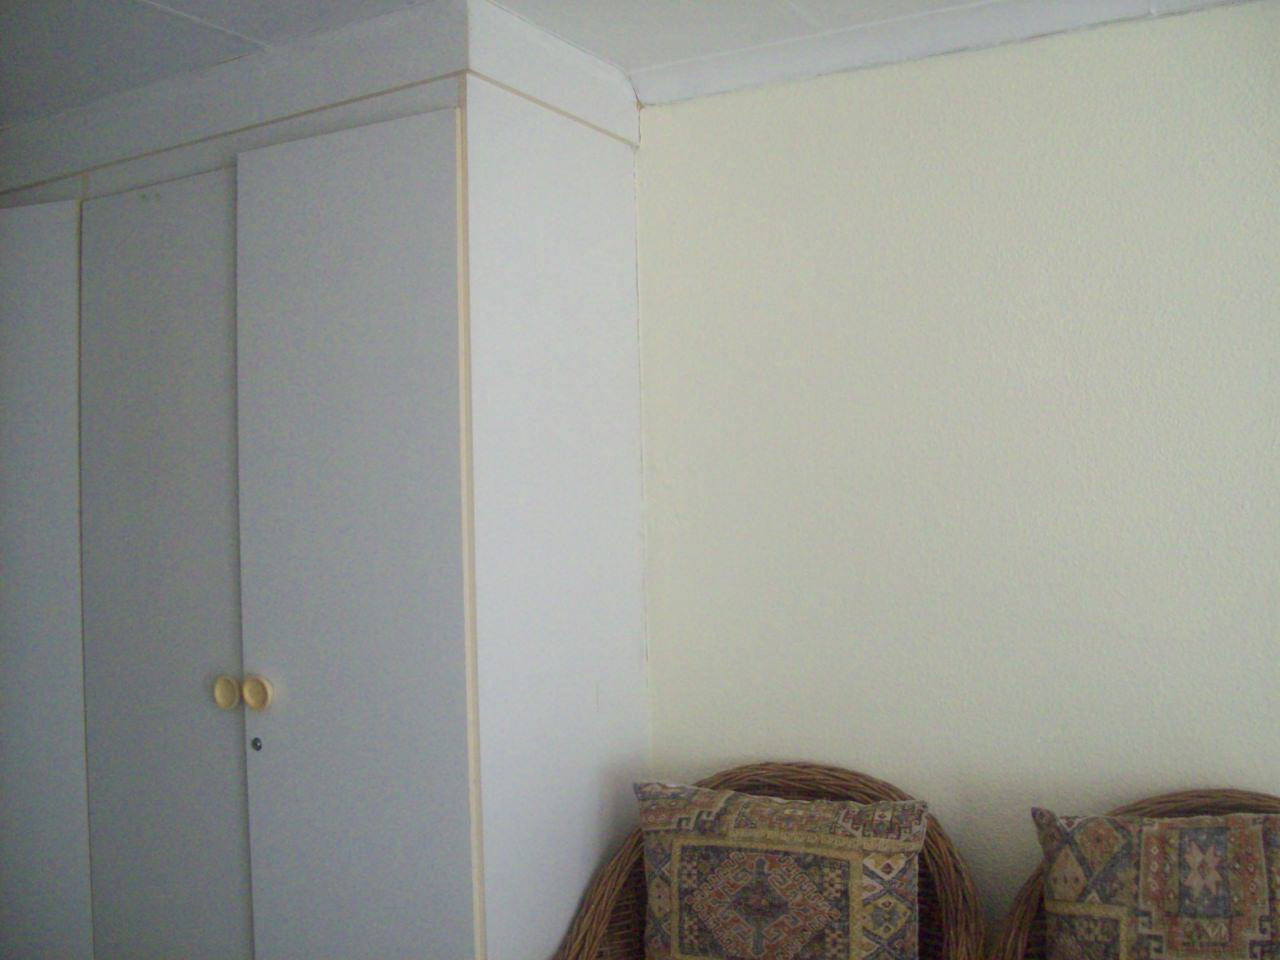 3 Bedroom Townhouse for sale in Bassonia ENT0071278 : photo#37